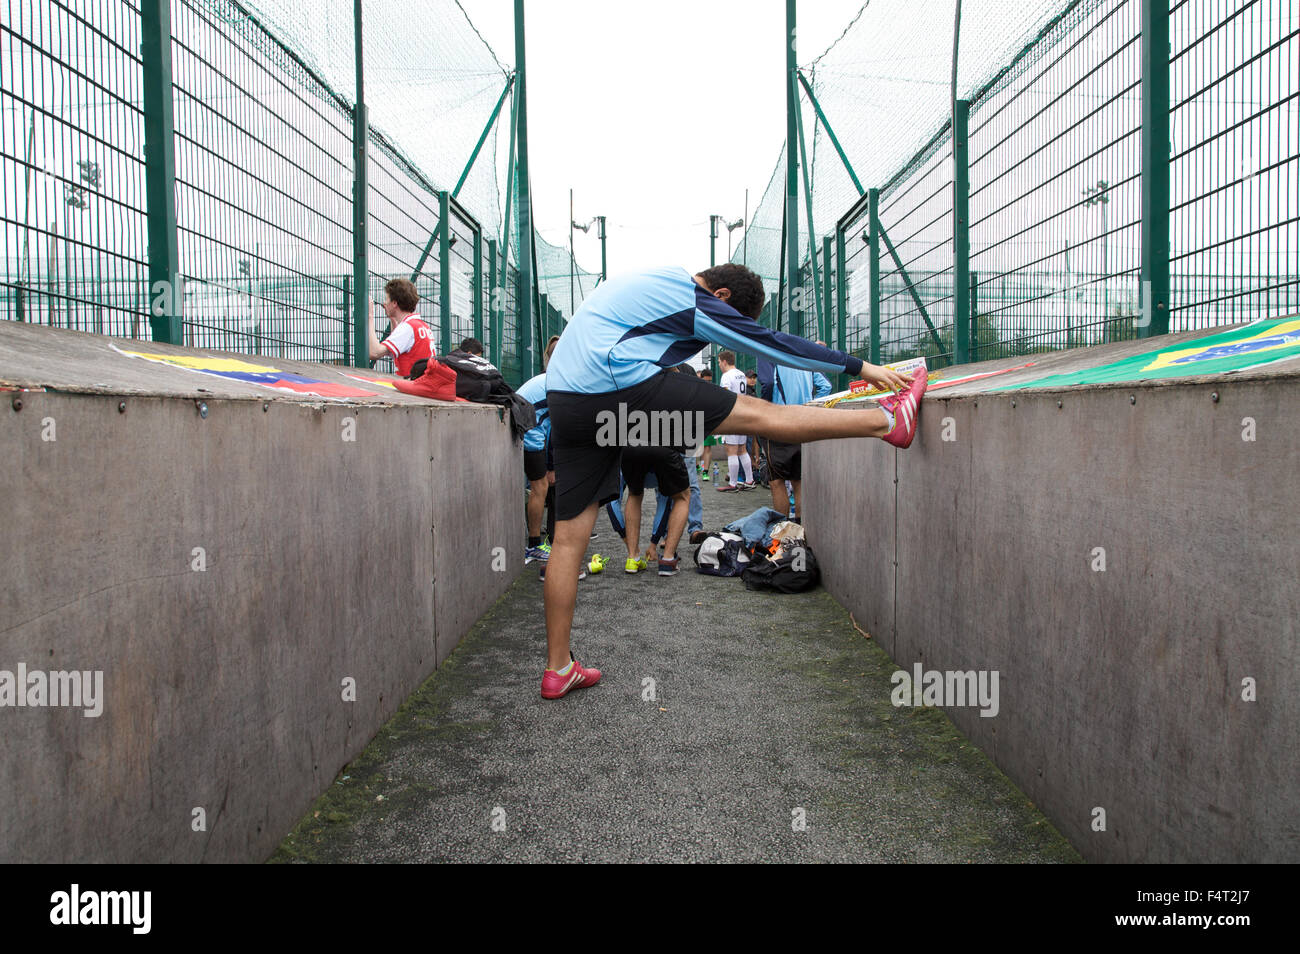 A footballer warming up to play 5 a side football. - Stock Image